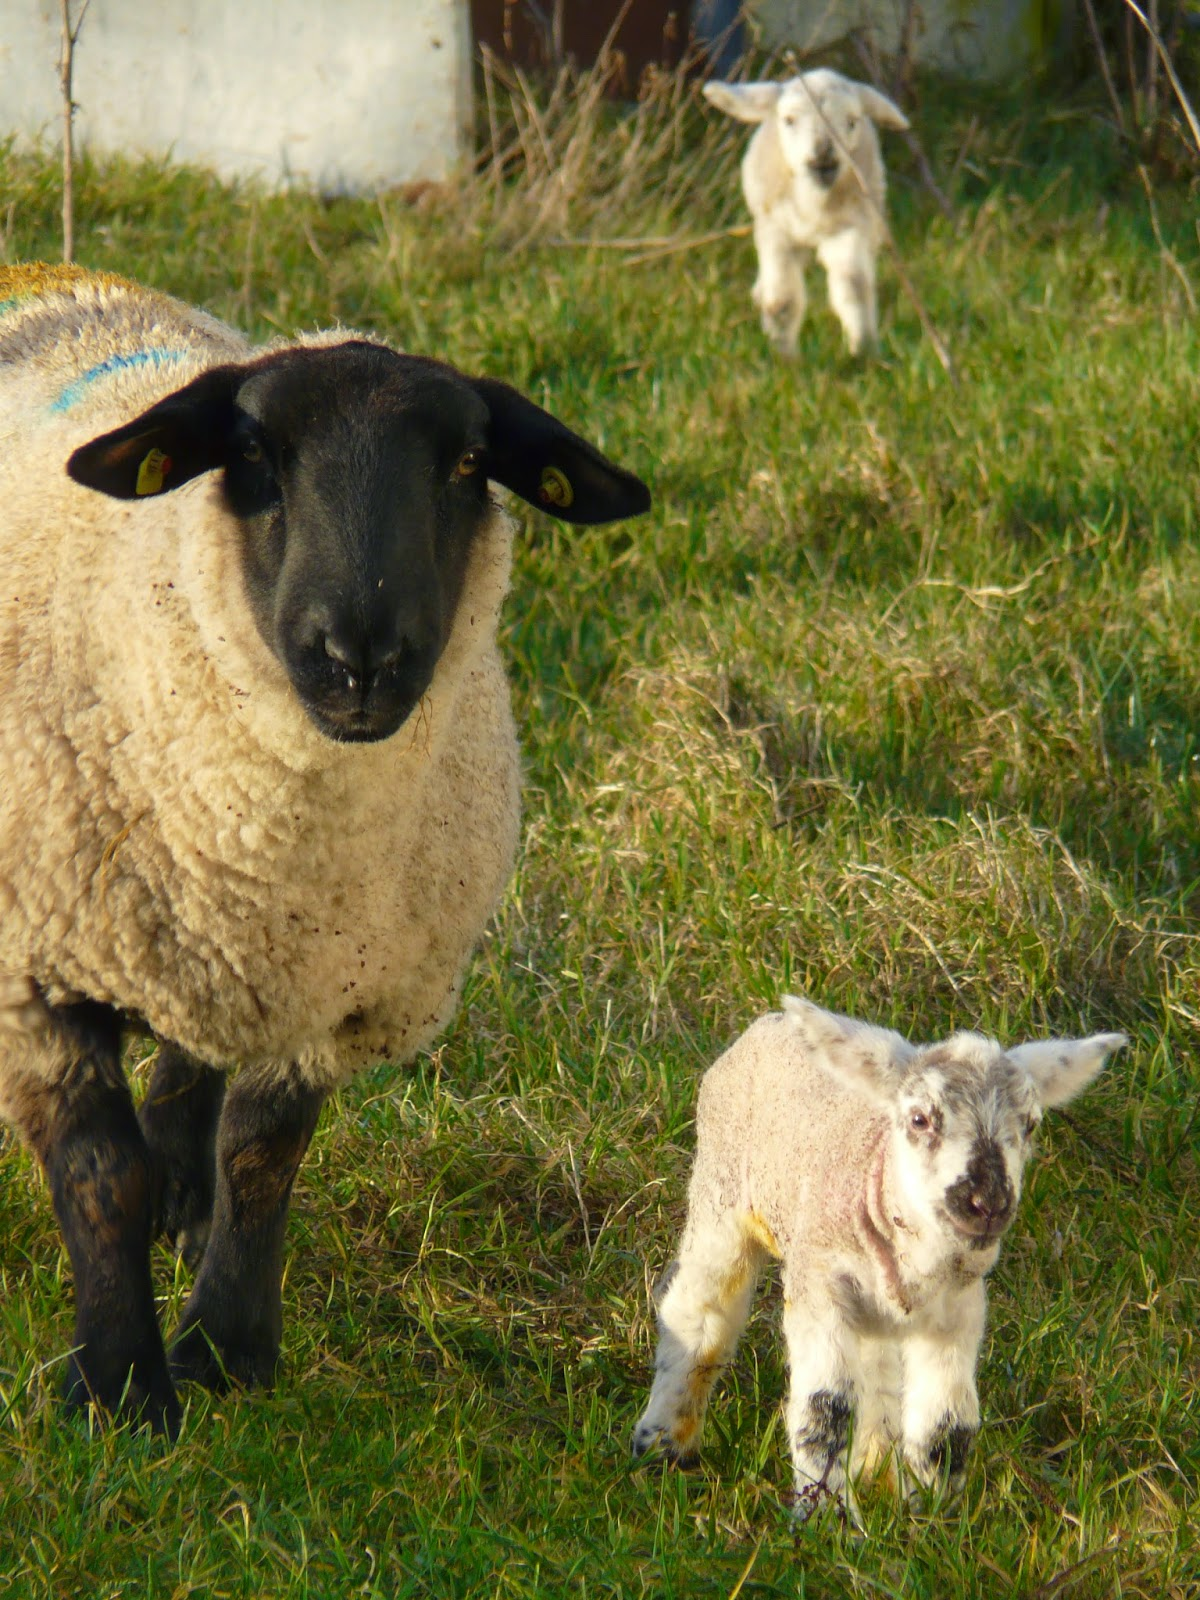 The Main Health Problems Suffered By Lambs